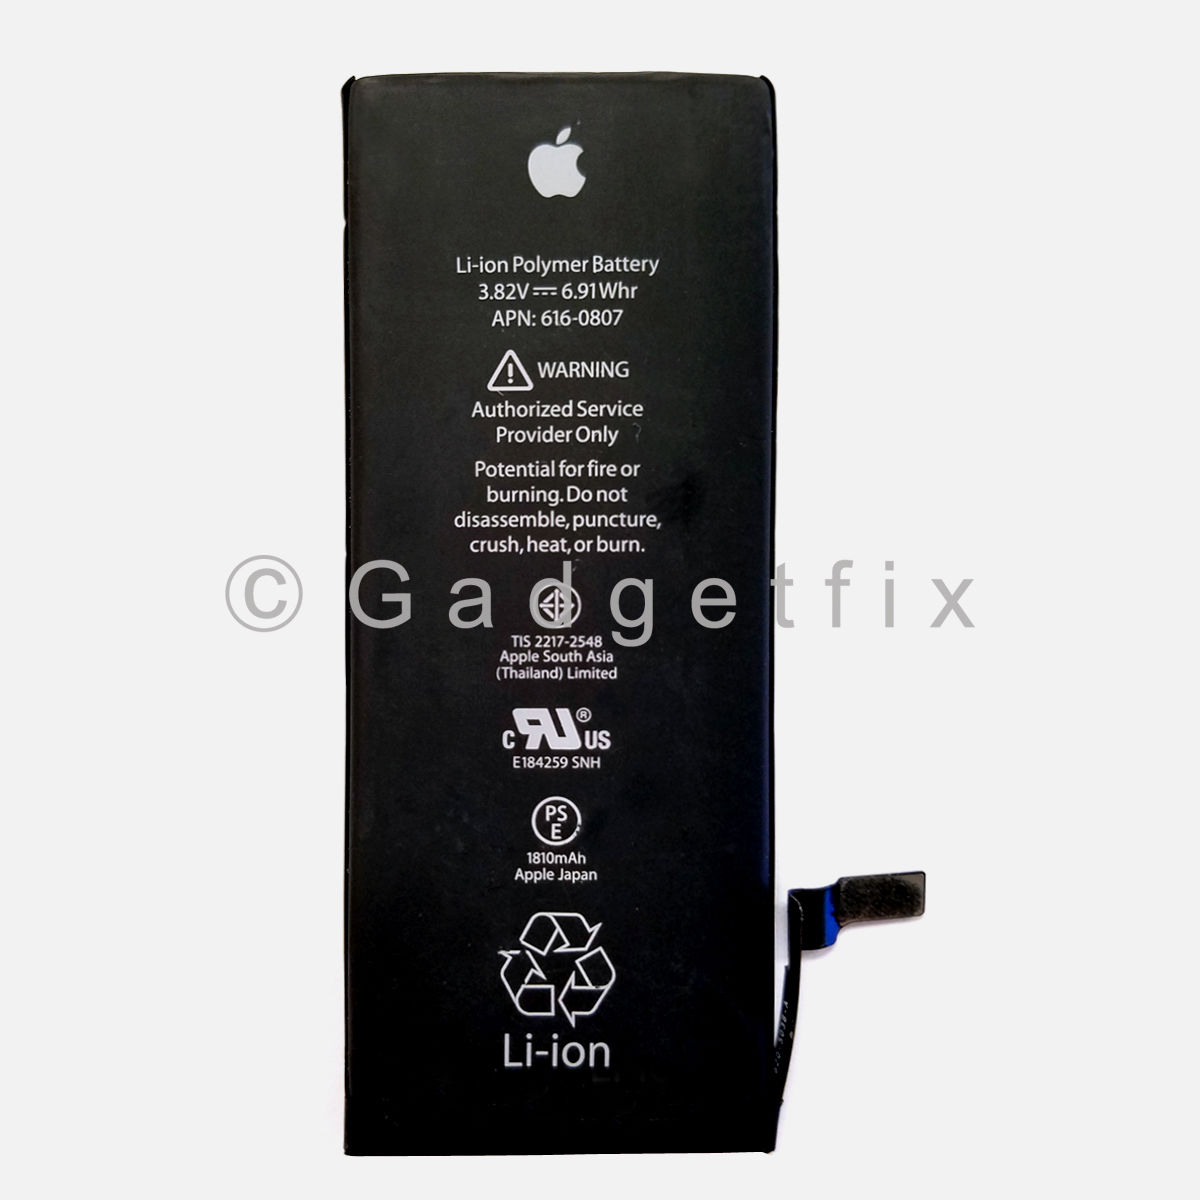 OEM Li-ion Battery For Apple iPhone 6 | Cadex Tested Minimum 80% Capacity